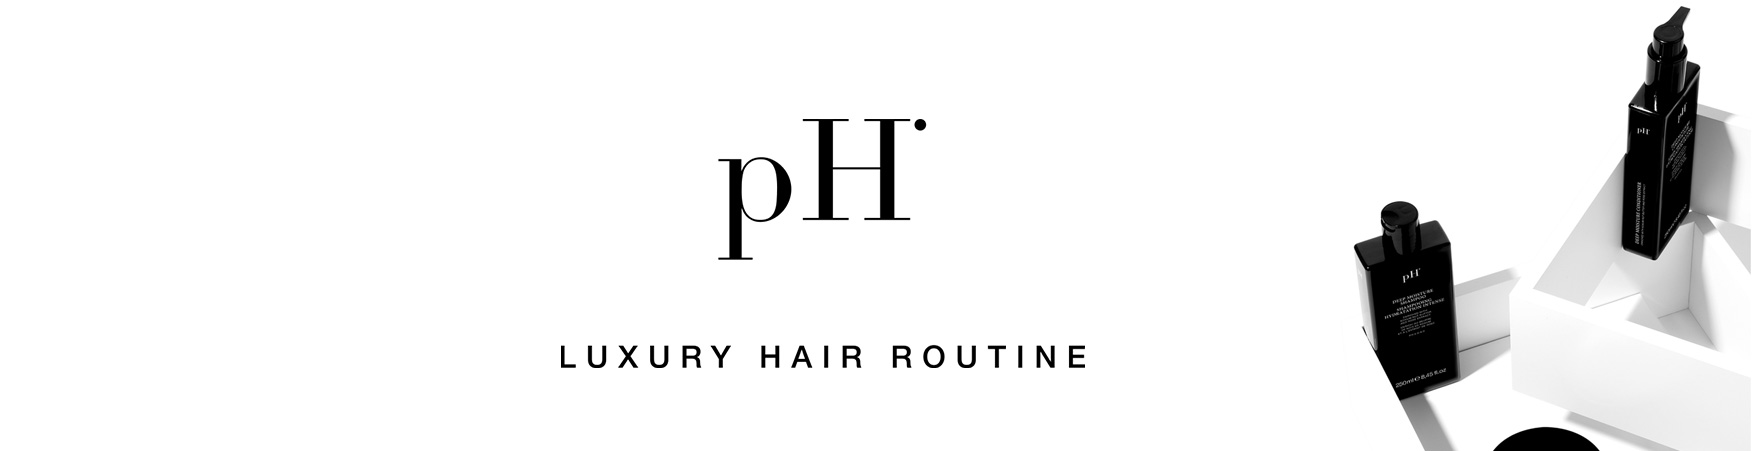 pH Laboratories